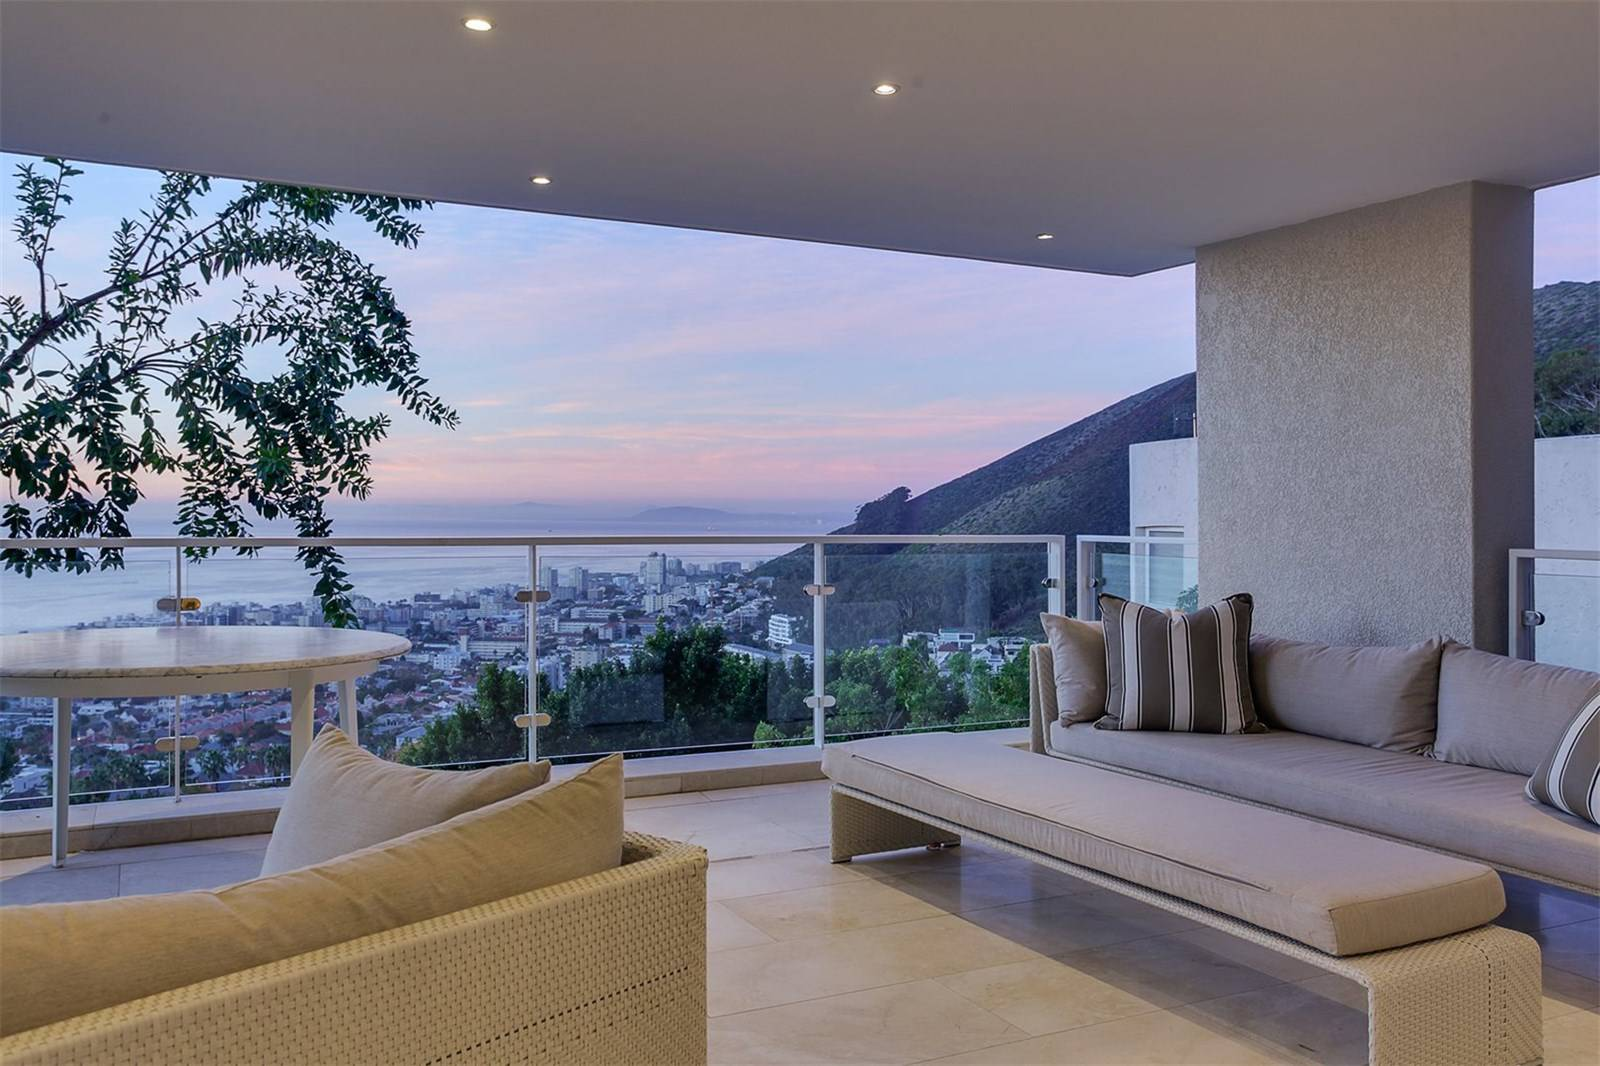 FRESNAYE - IMMACULATE 'ONE OF A KIND' HOME